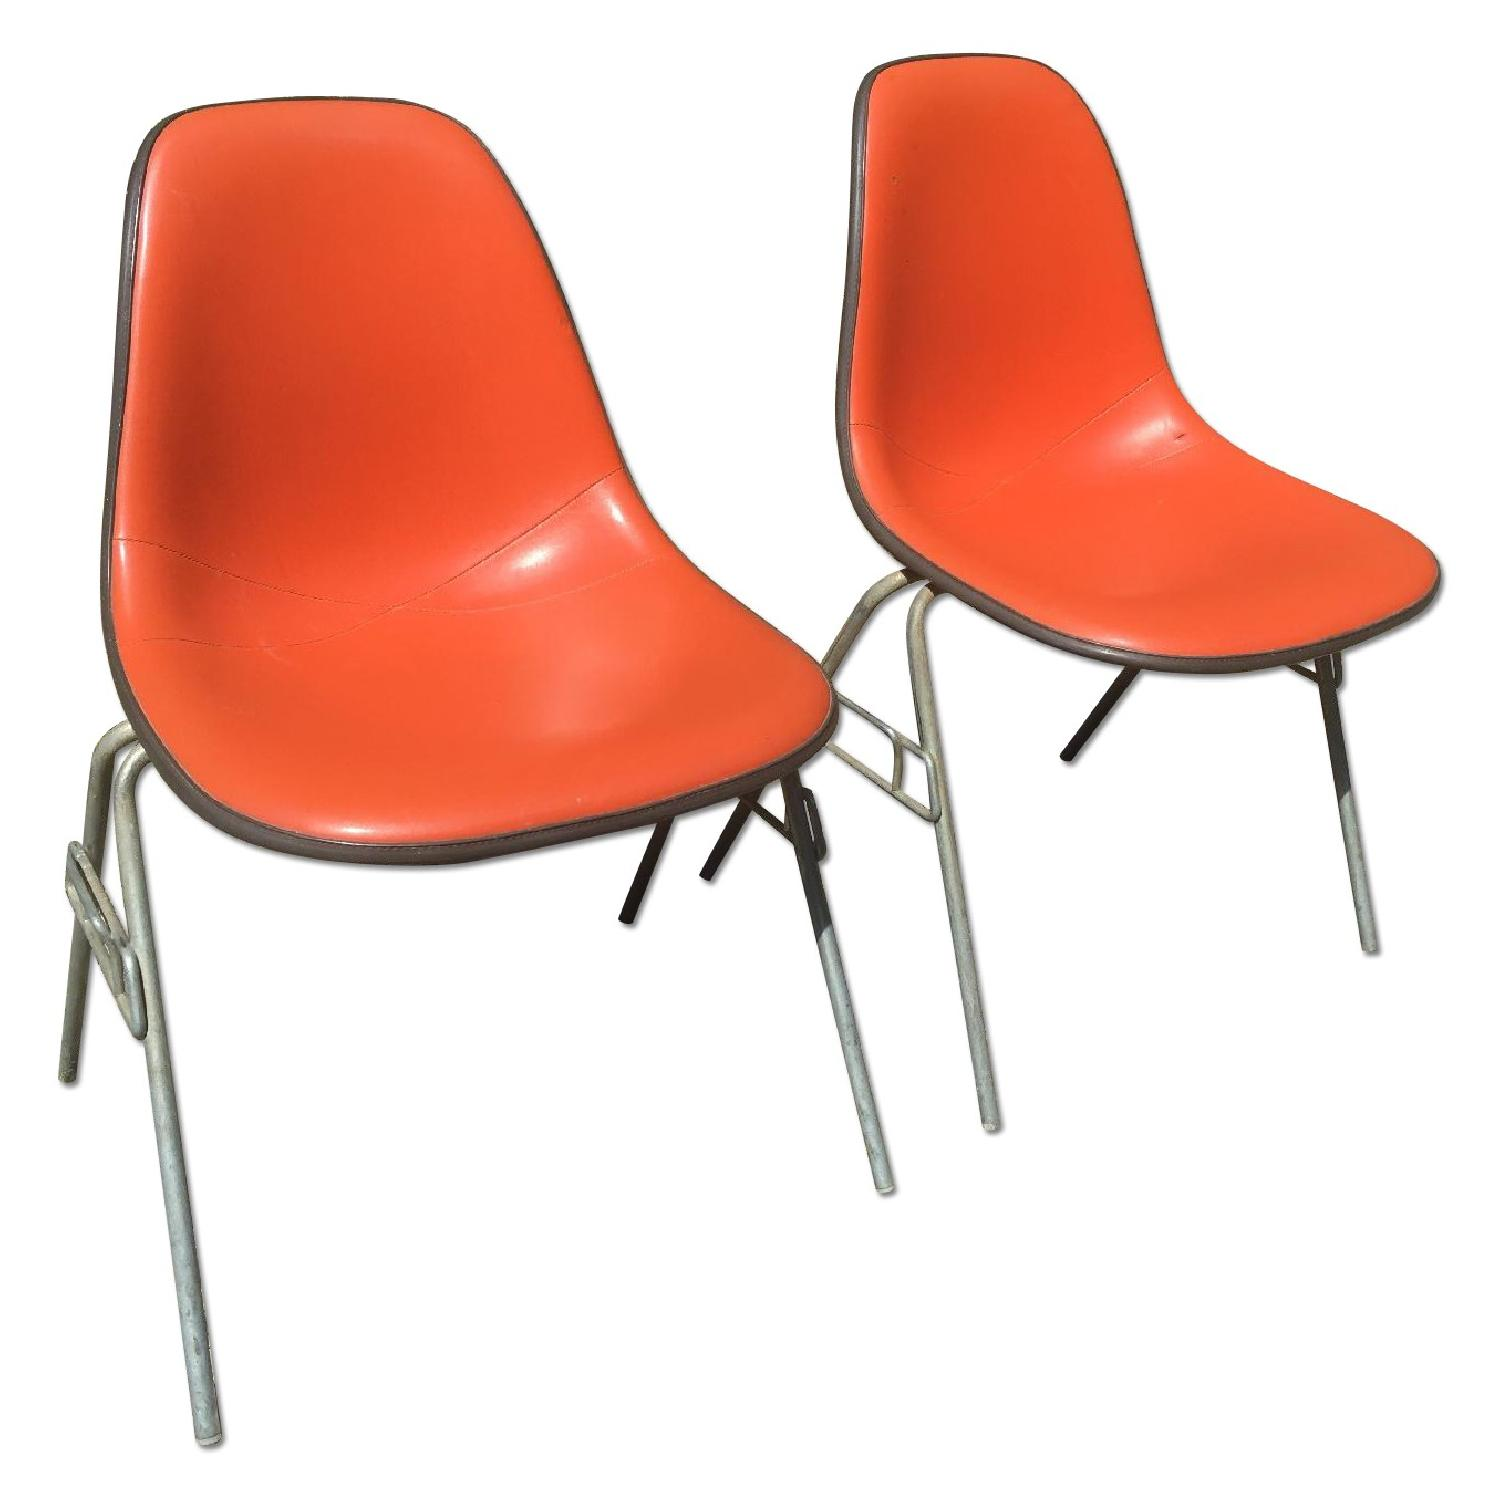 Herman Miller Eames Shell Chairs AptDeco